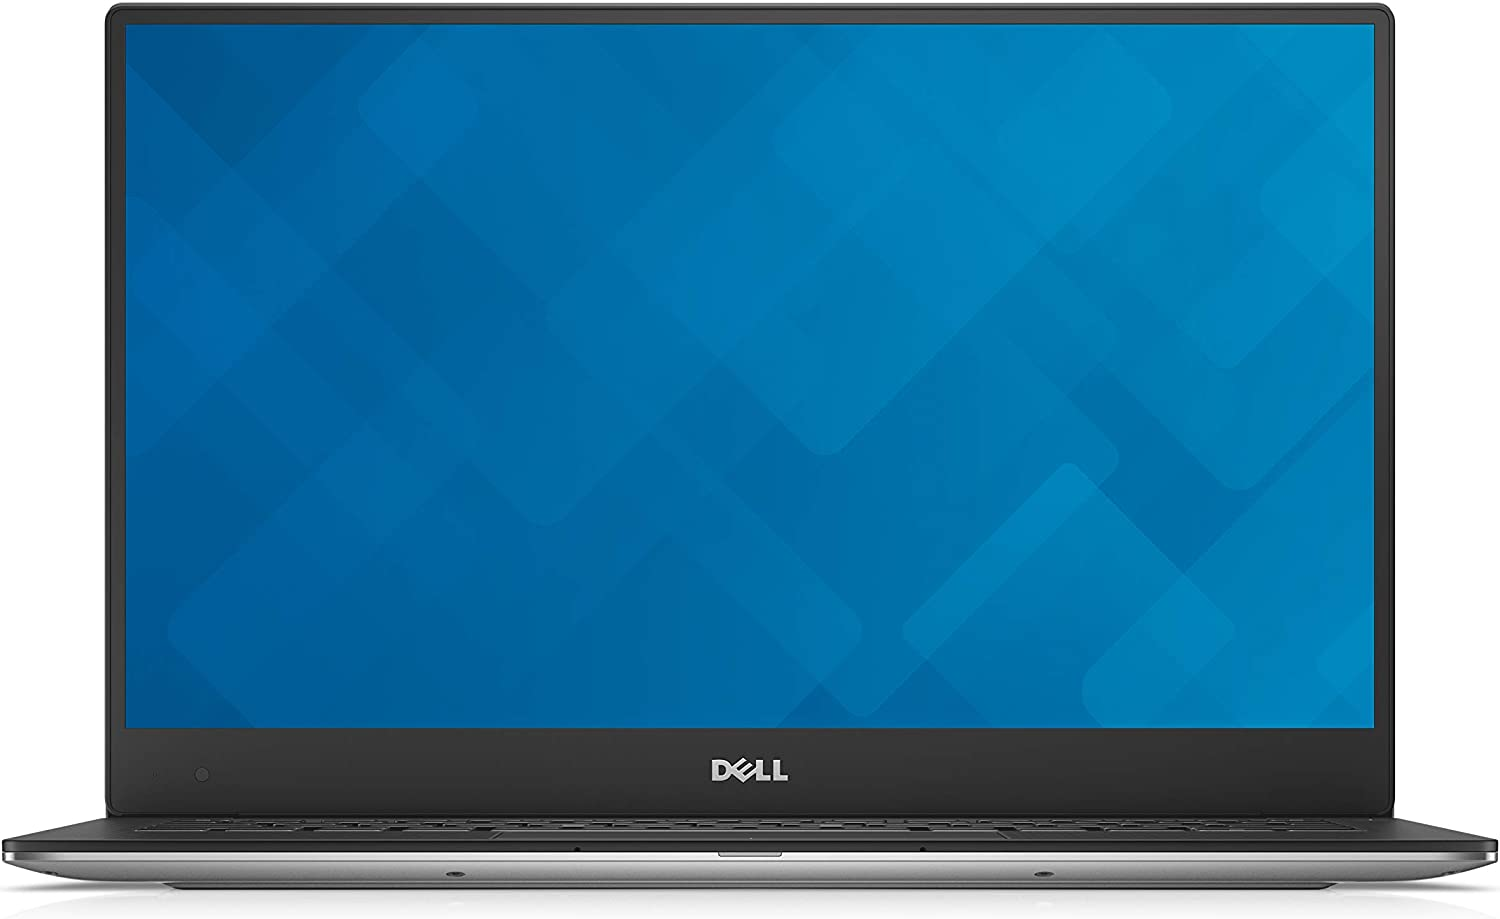 DELL XPS 13 9350 QHD+ 1800P TOUCH I7-6500U 3.1GHZ 16GB RAM 512GB PCIE SSD Backlit Keyboard WIN 10 (Renewed)